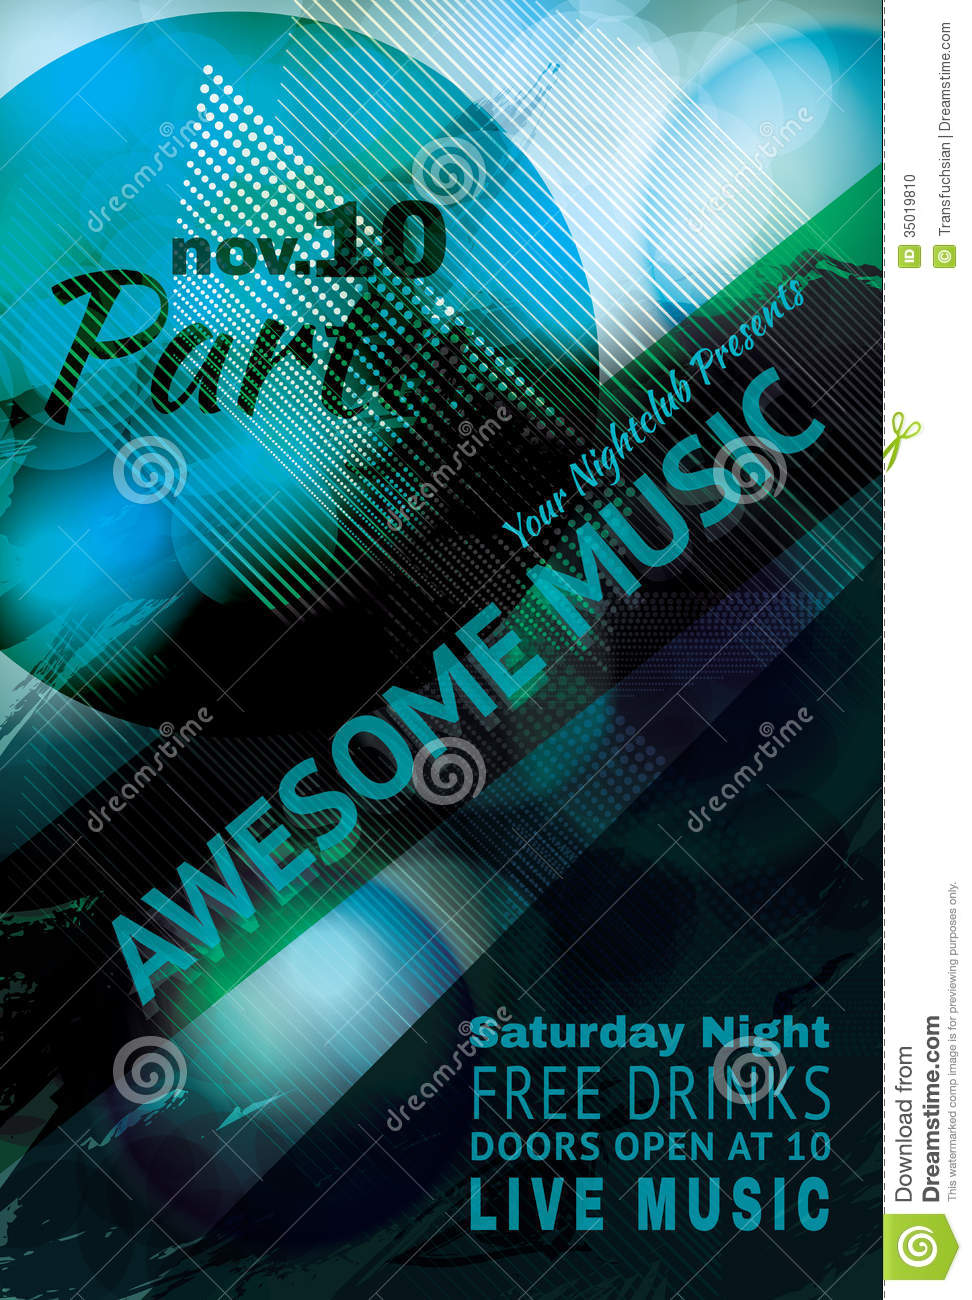 Grungy Teal Flyer Background Design Stock Photo - Image: 35019810